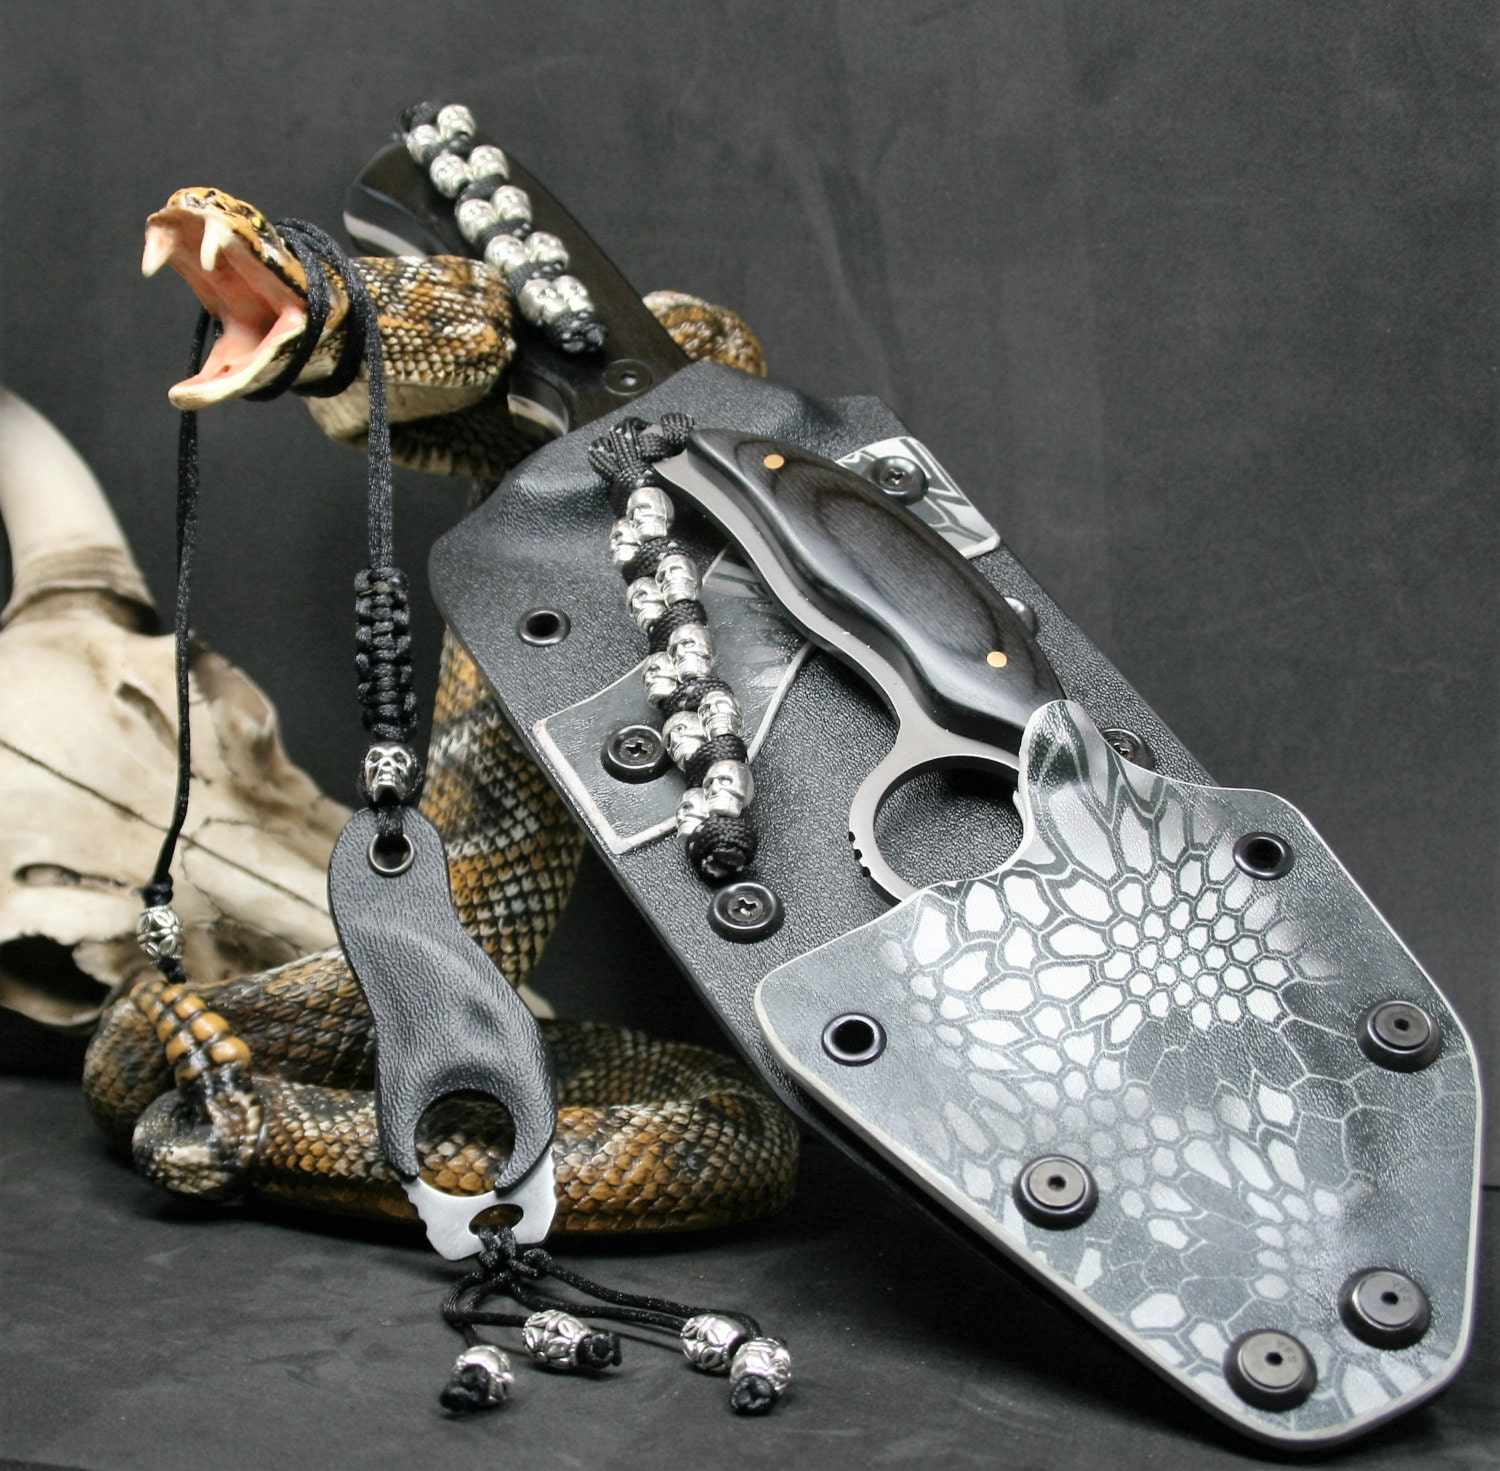 Kydex Knife Sheath: Huntsman/with Knives Kydex Sheath And Paracord Or Leather